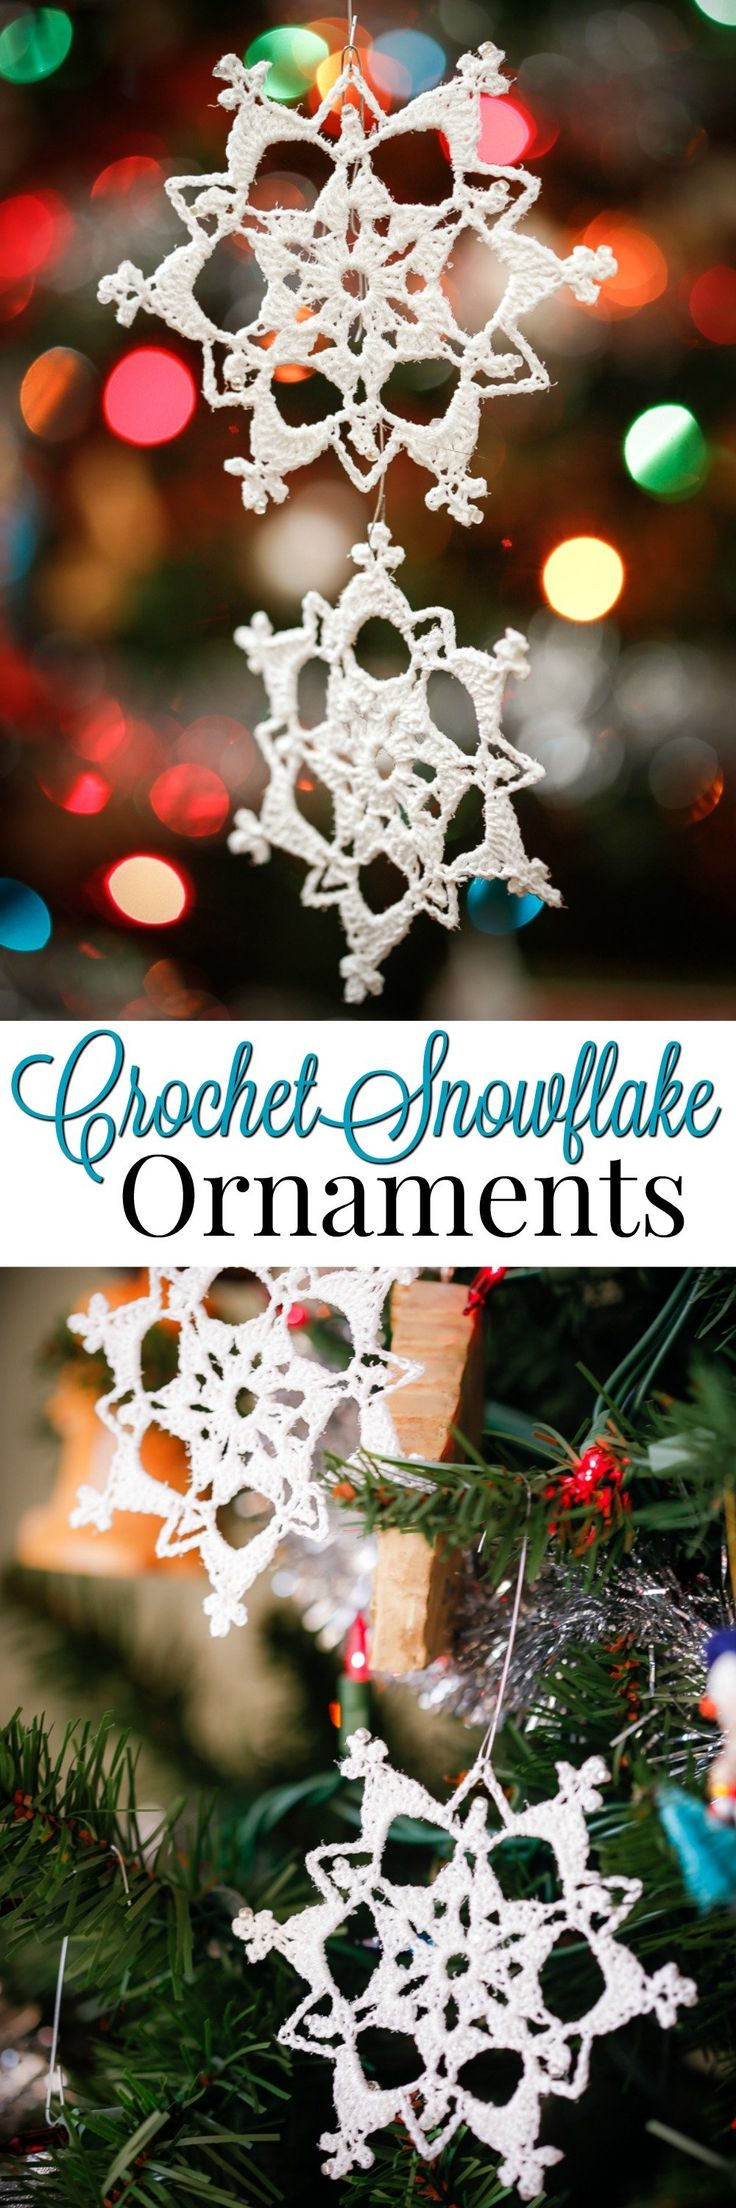 Learn to crochet beautiful Glittering Lace Crochet Snowflake Ornaments! Step by Step crochet pattern with photos make this an easy handmade ornament via @2creatememories